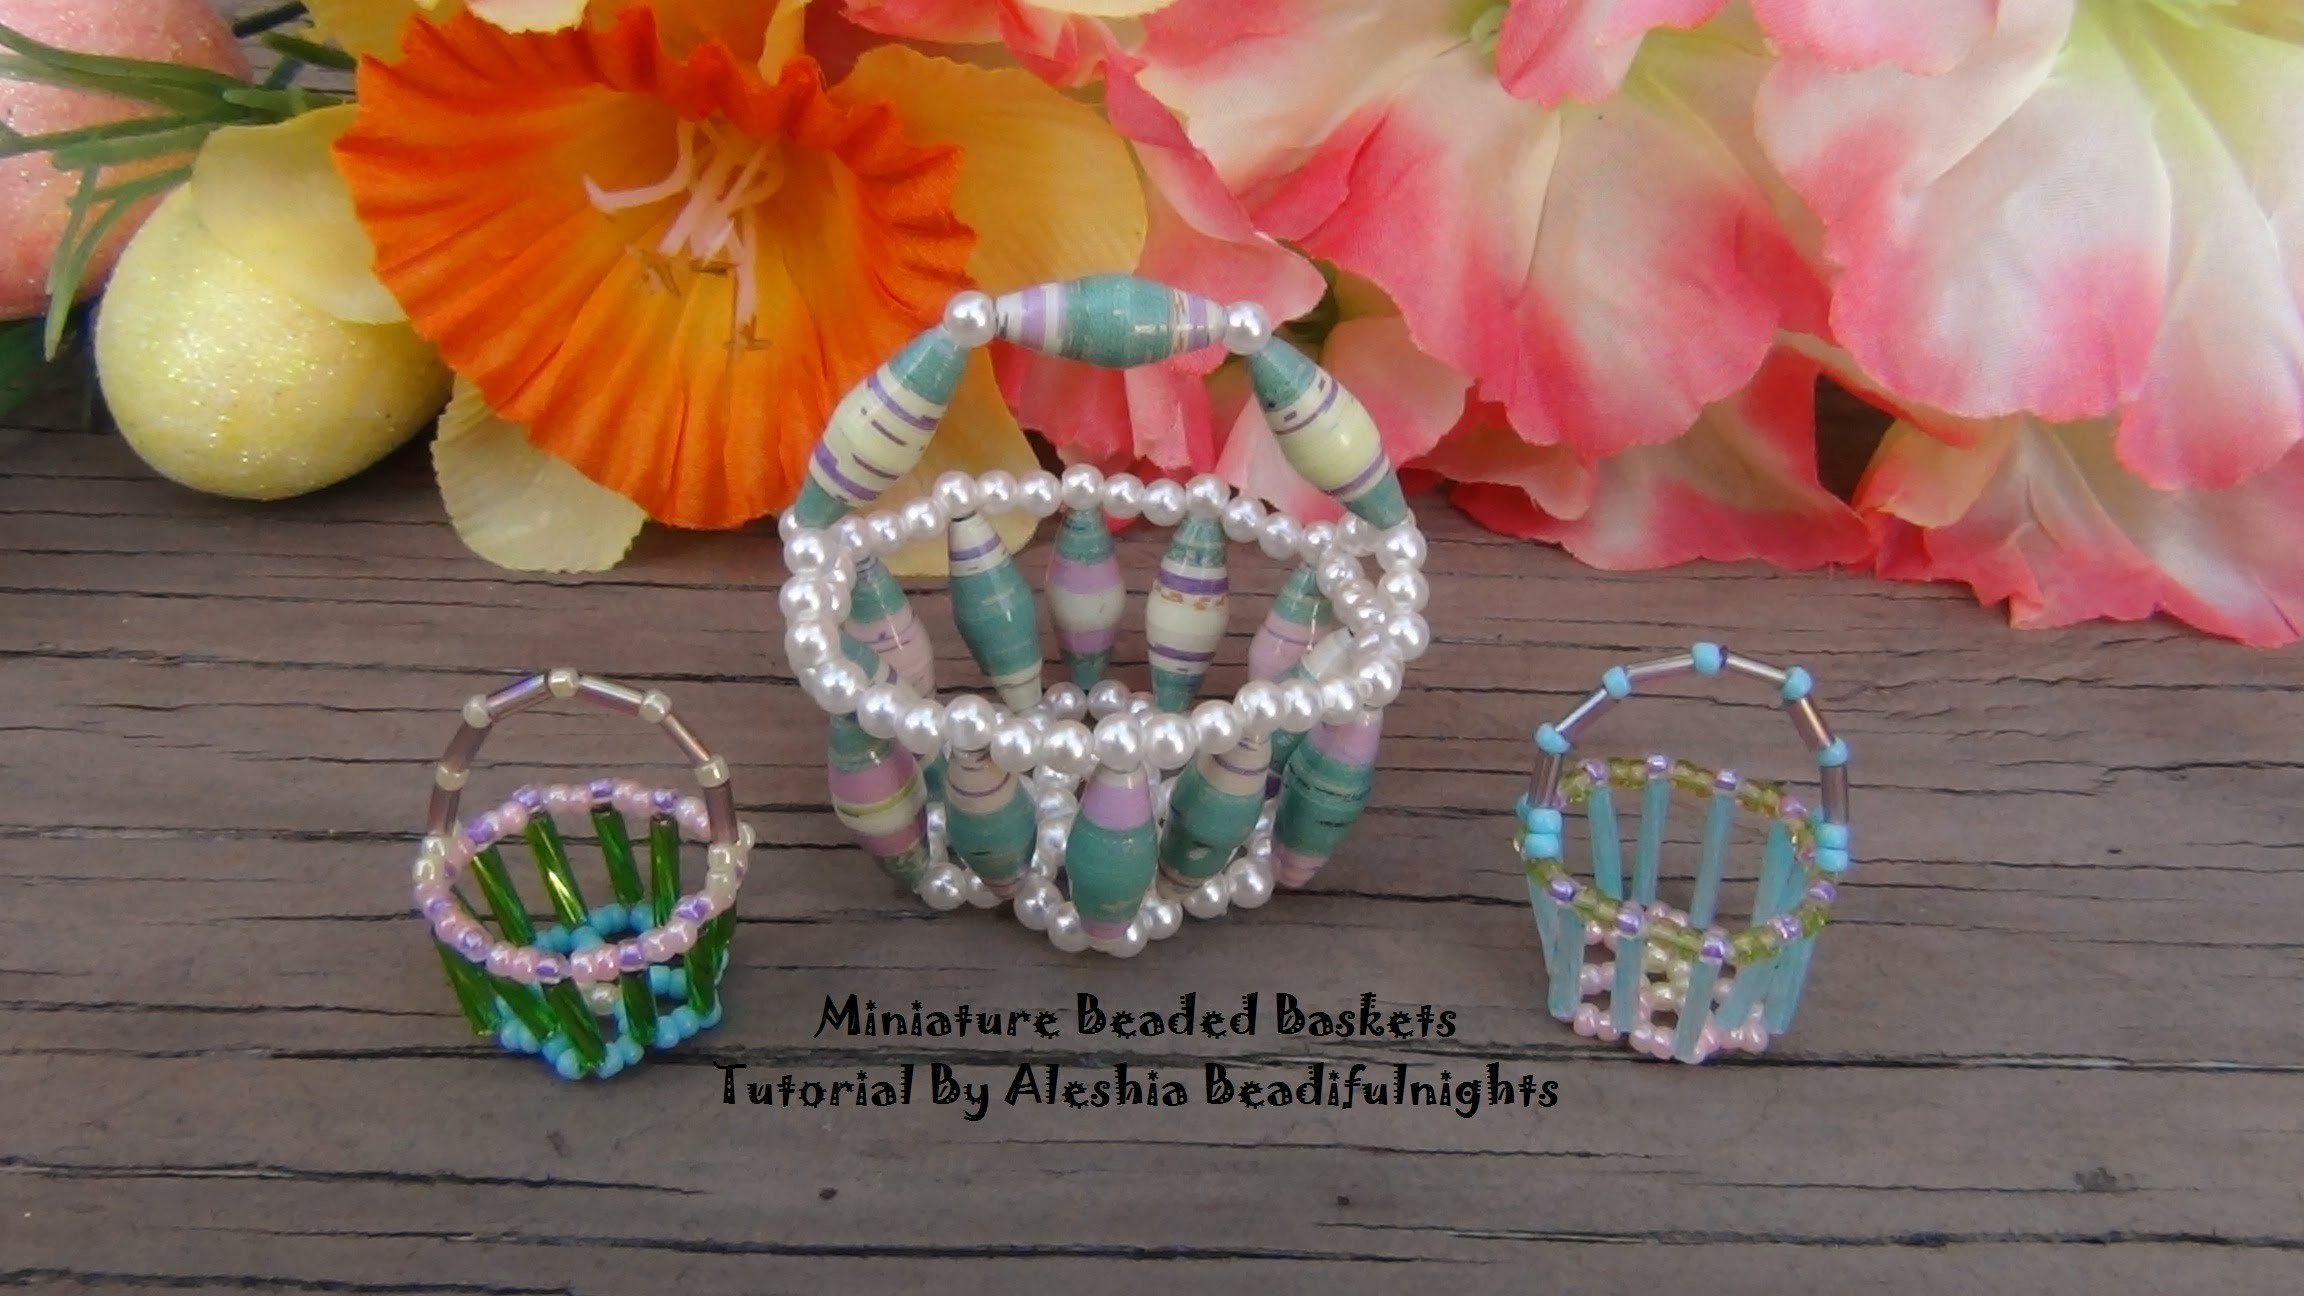 Miniature Beaded Basket Tutorial